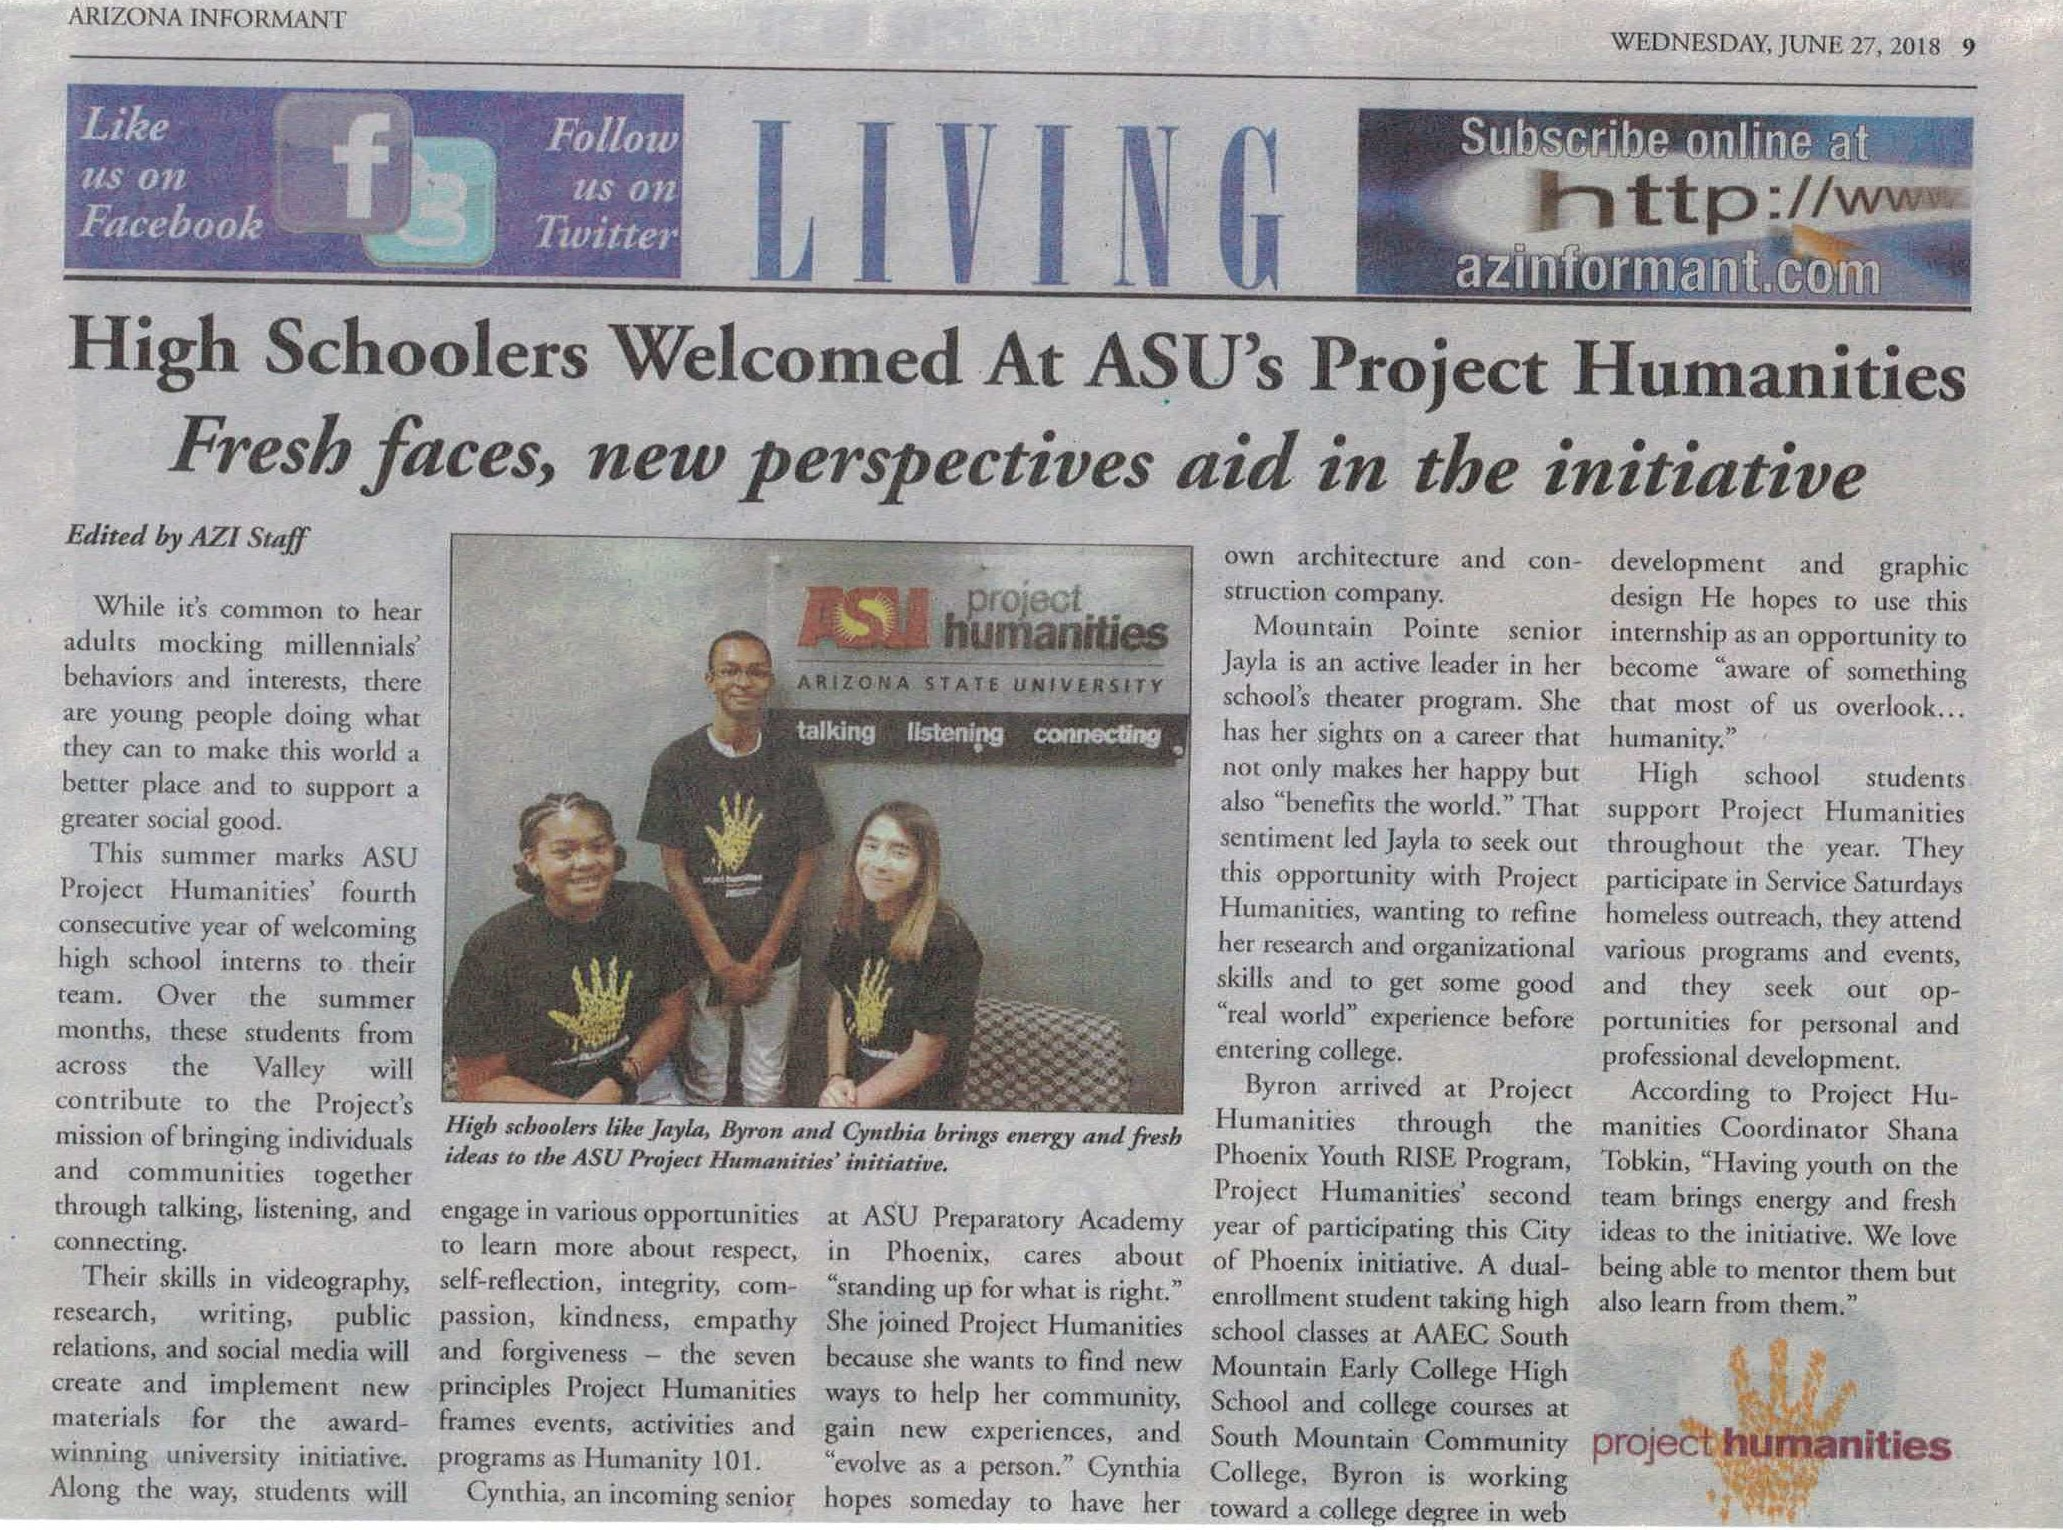 High Schoolers Welcomed At ASU's Project Humanities Fresh faces, new perspectives aid in the initiative